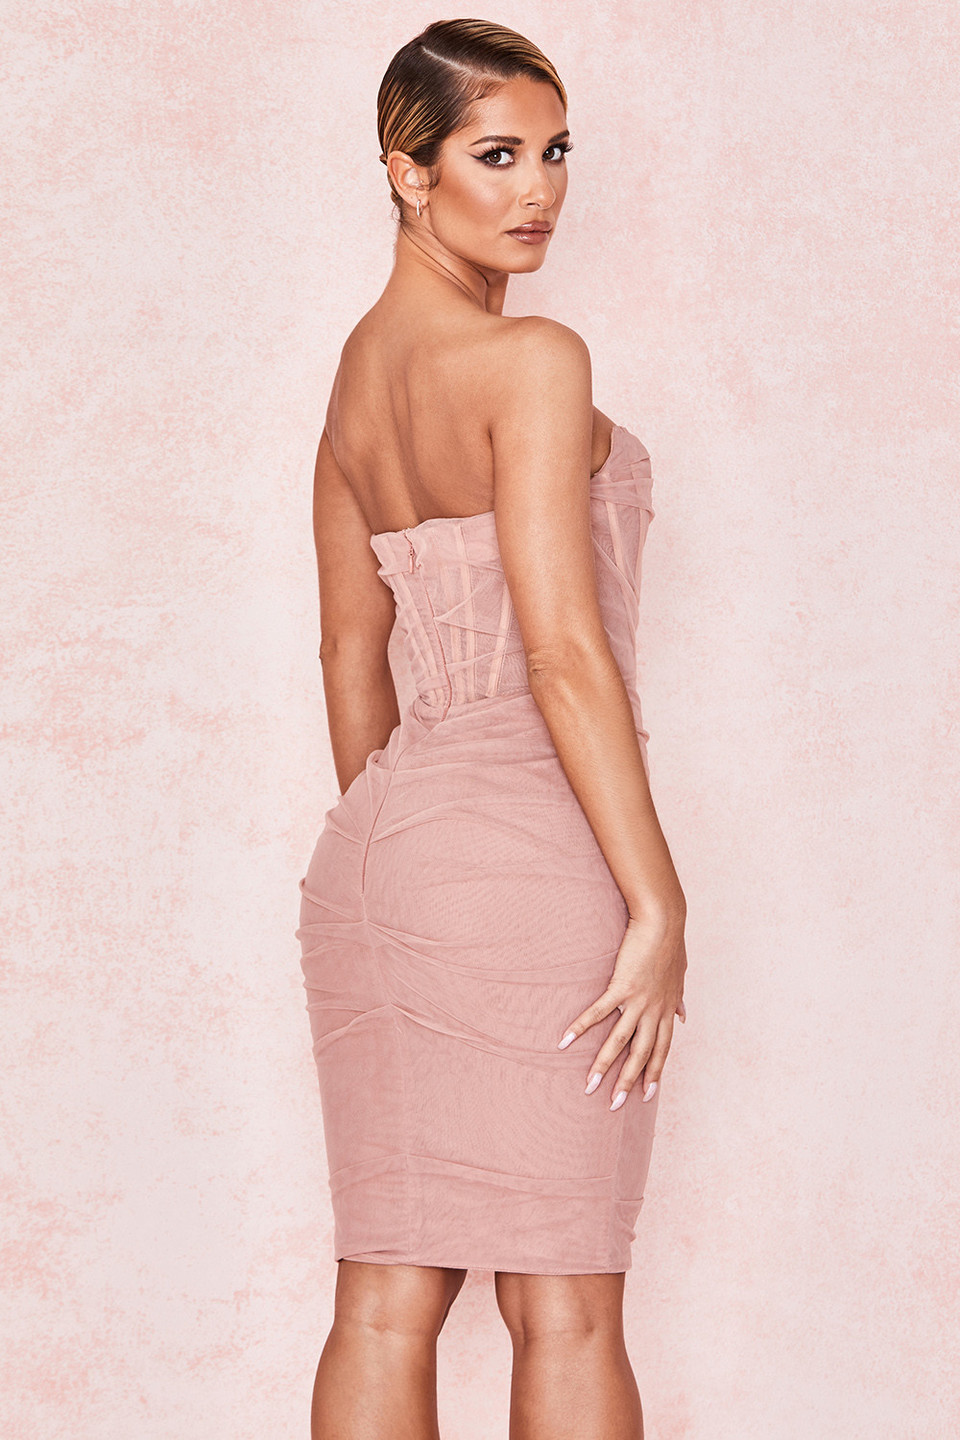 Leila Blush Mesh Strapless Corset Dress